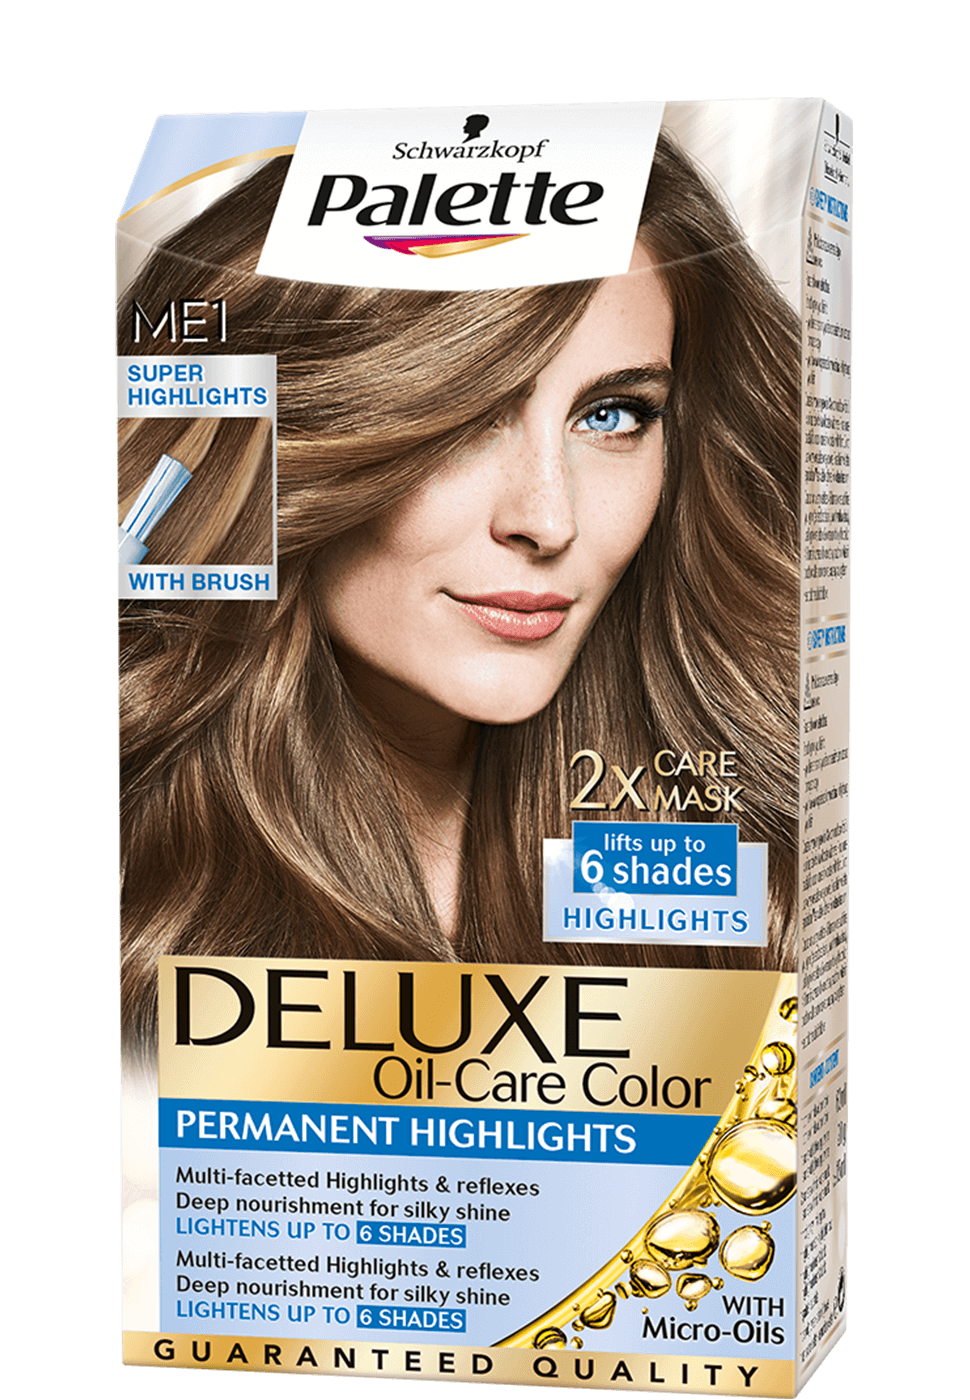 palette_com_deluxe_permanent_highlights_me1_super_highlights_970x1400